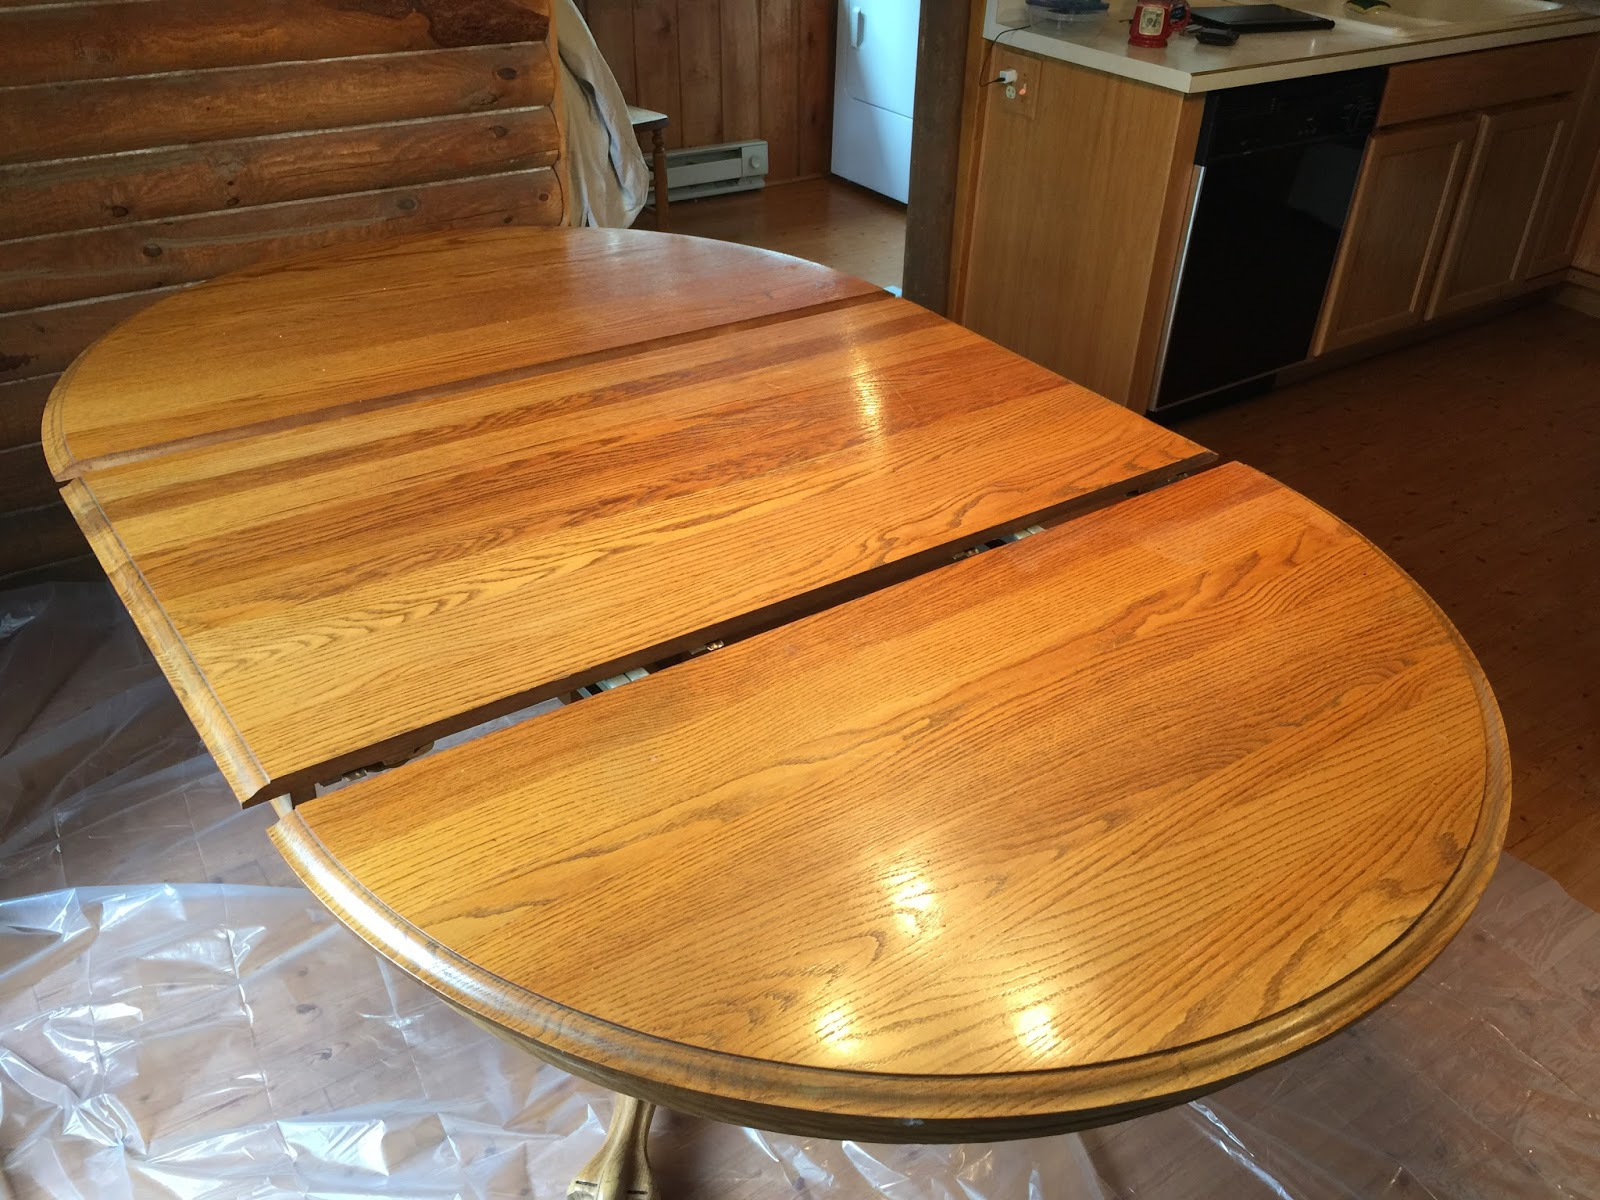 Refinish Oak Table ~ Eclectic breakfast refinishing an oak table top